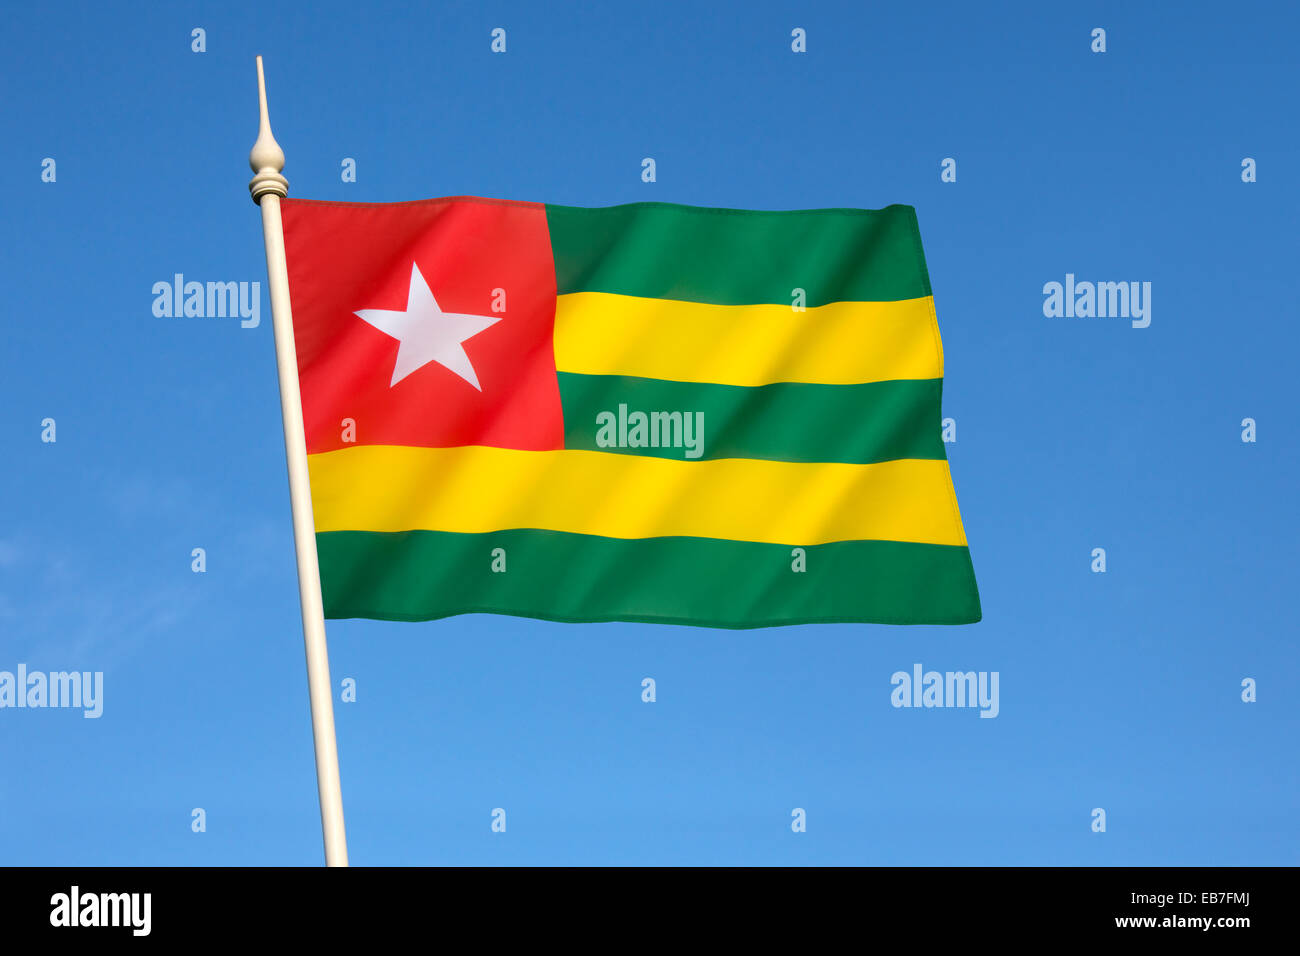 Flag of Togo - West Africa - Stock Image